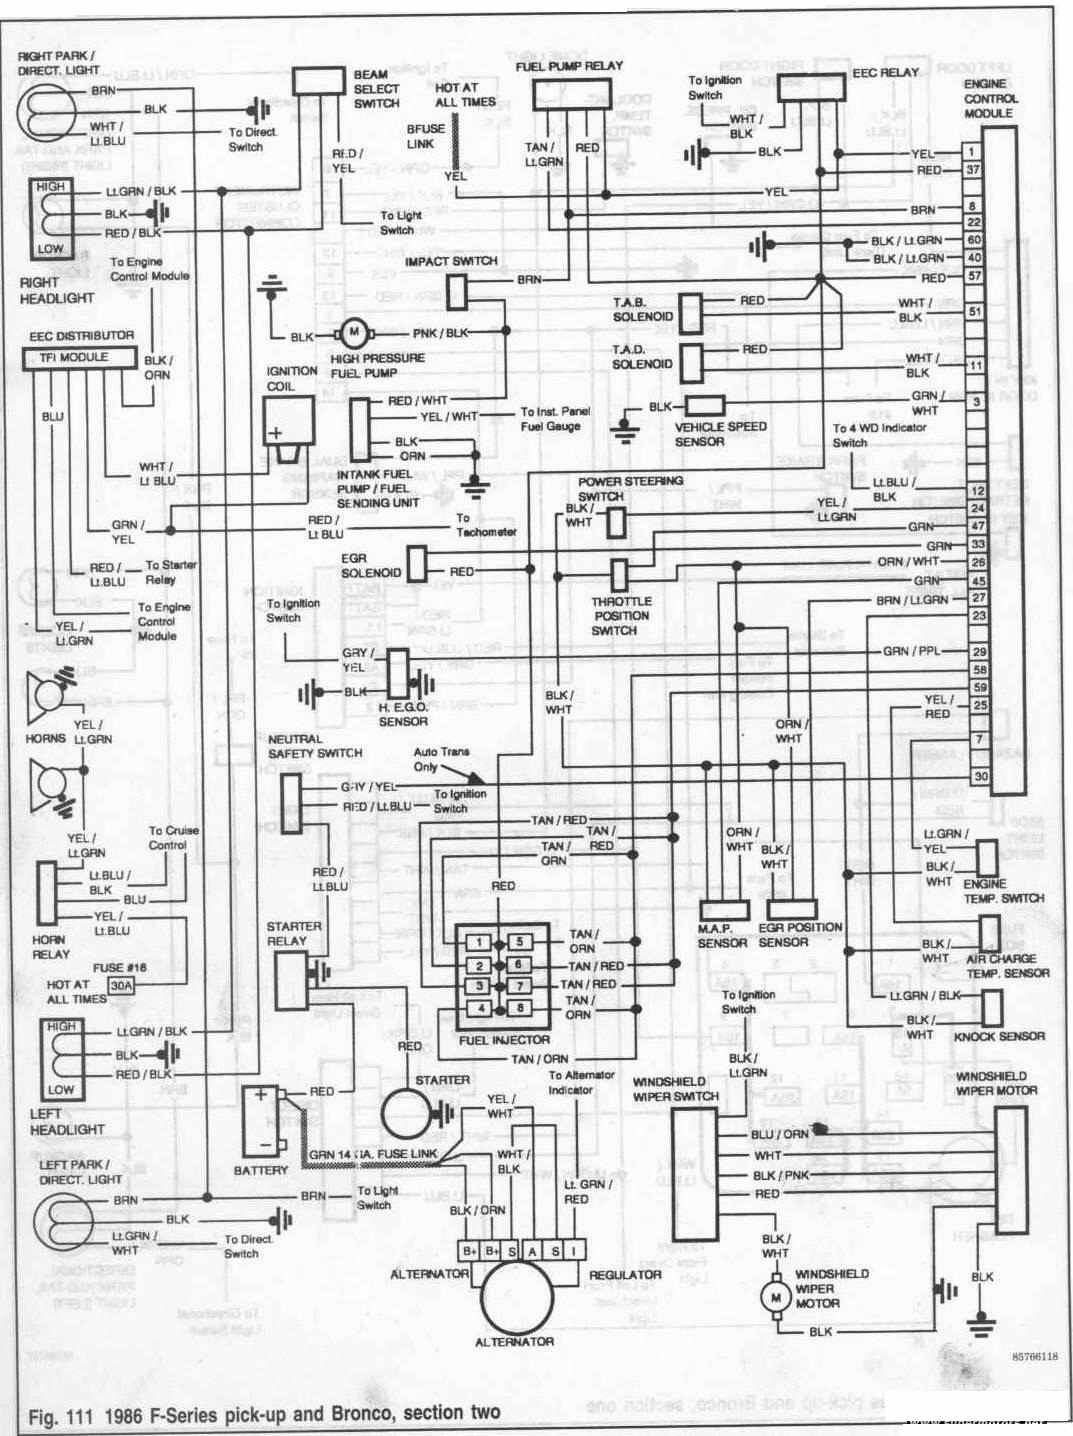 81 Ford Alternator Wiring Schematic Library 1966 Mustang Diagram Bronco And F Series Pickup 1986 Engine Control Module All About